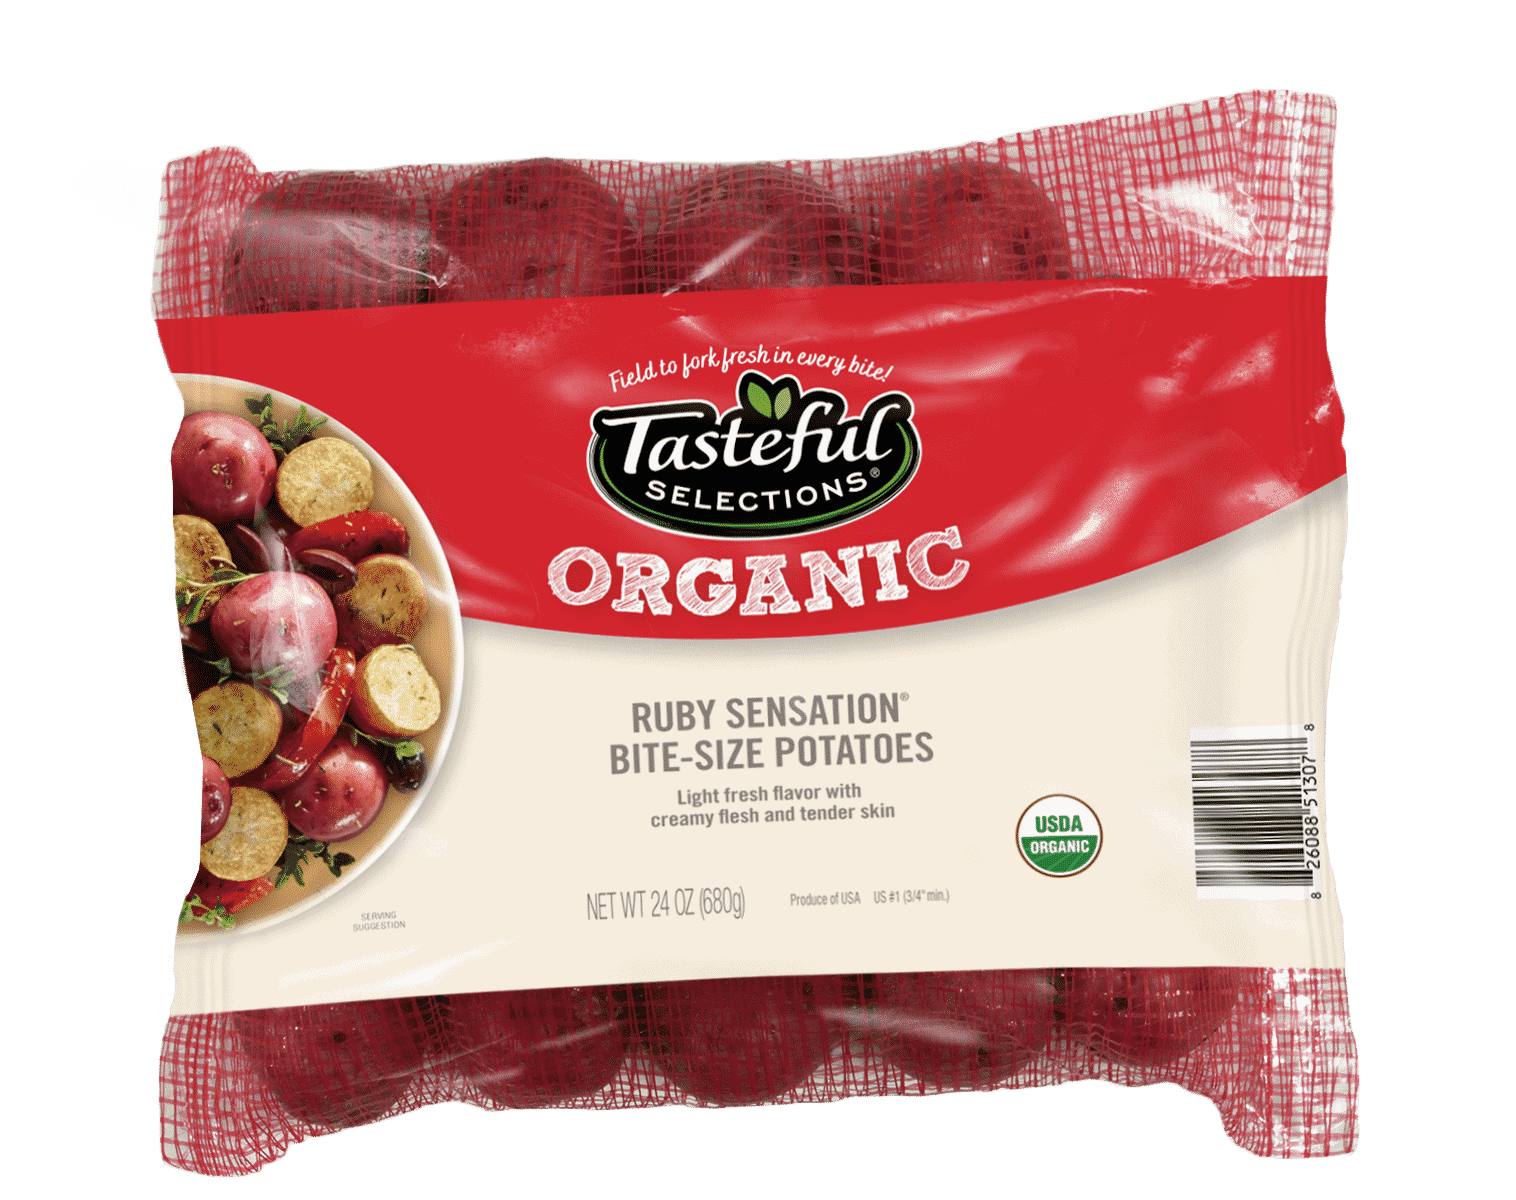 Tasteful Selections Organic Ruby Sensation Bite-Size Potatoes Mesh Pillow Pack